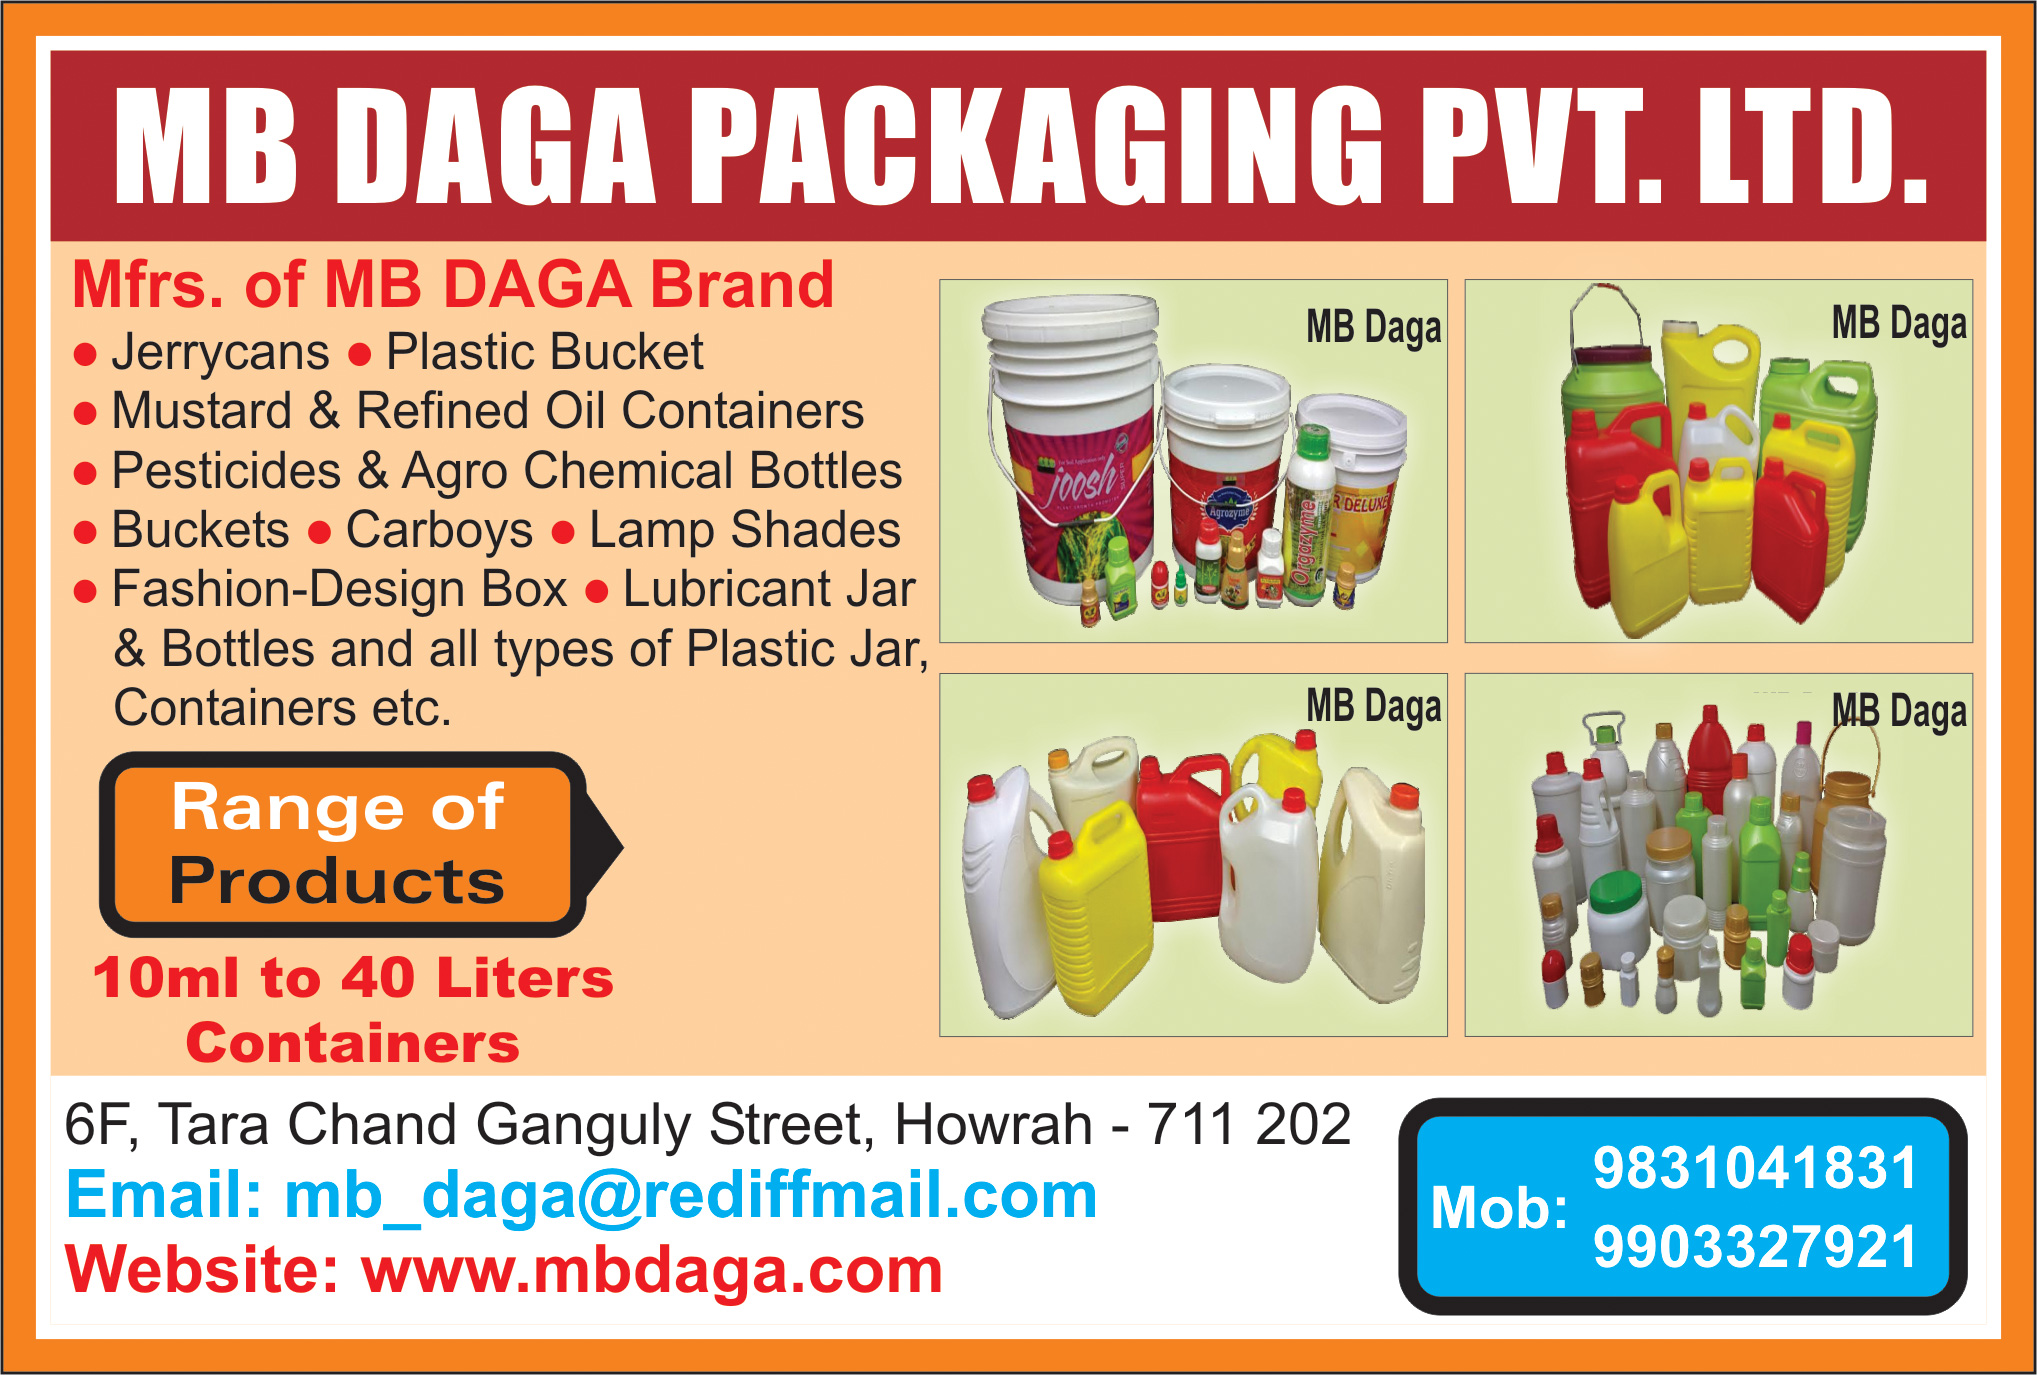 Jerrycans Plastic, M B DAGA PACKAGING PVT LTD, Kolkata,  Yellow Pages, Kolkata, West Bengal